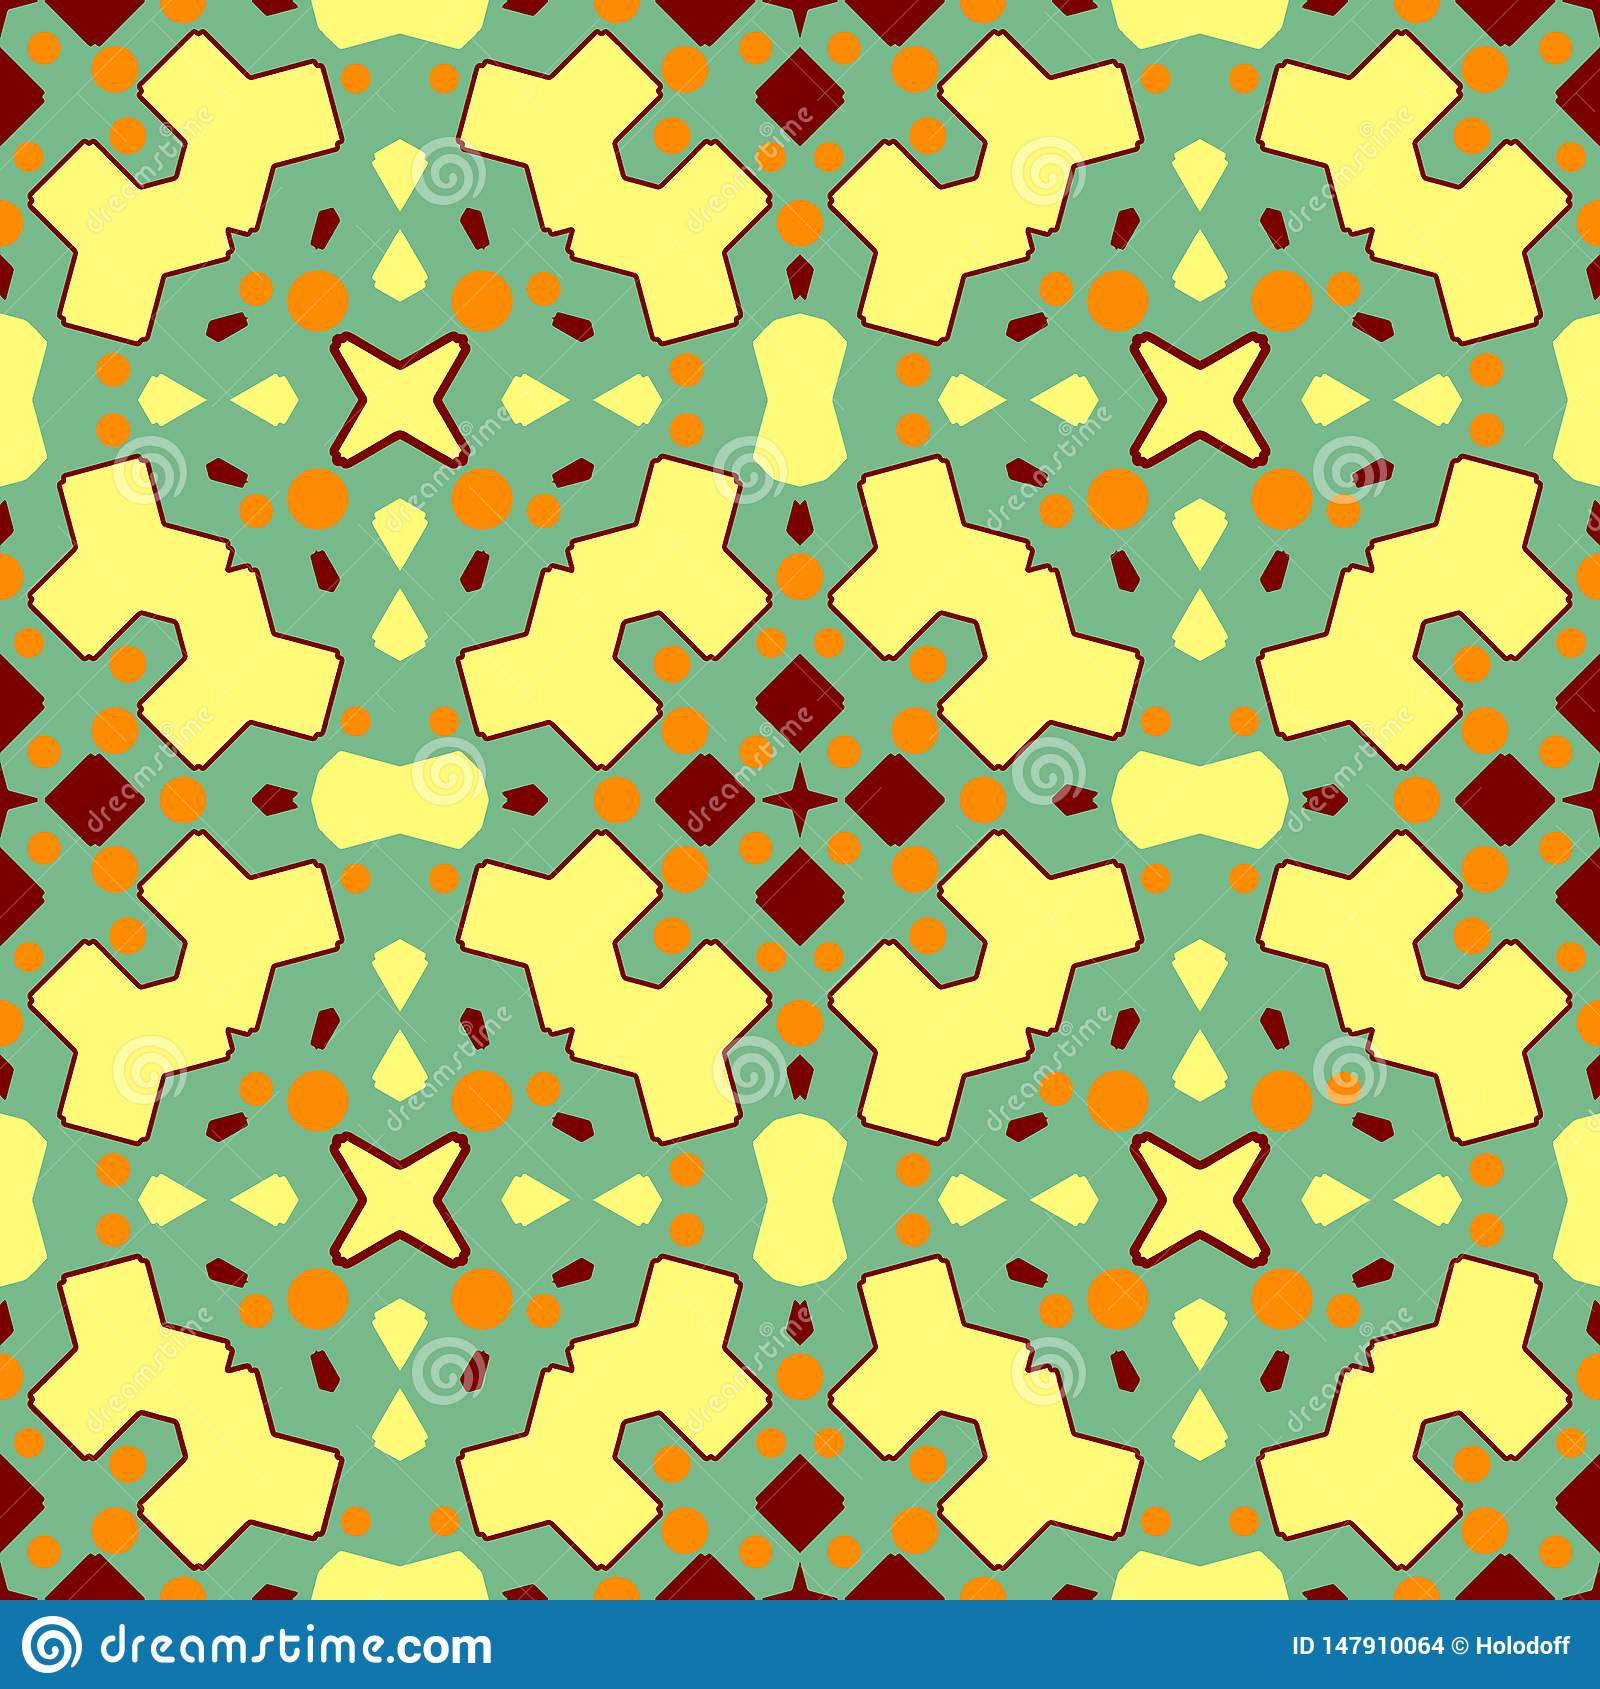 Ceramic tile texture. Gorgeous seamless patchwork pattern from colorful ornaments for ceramic tiles